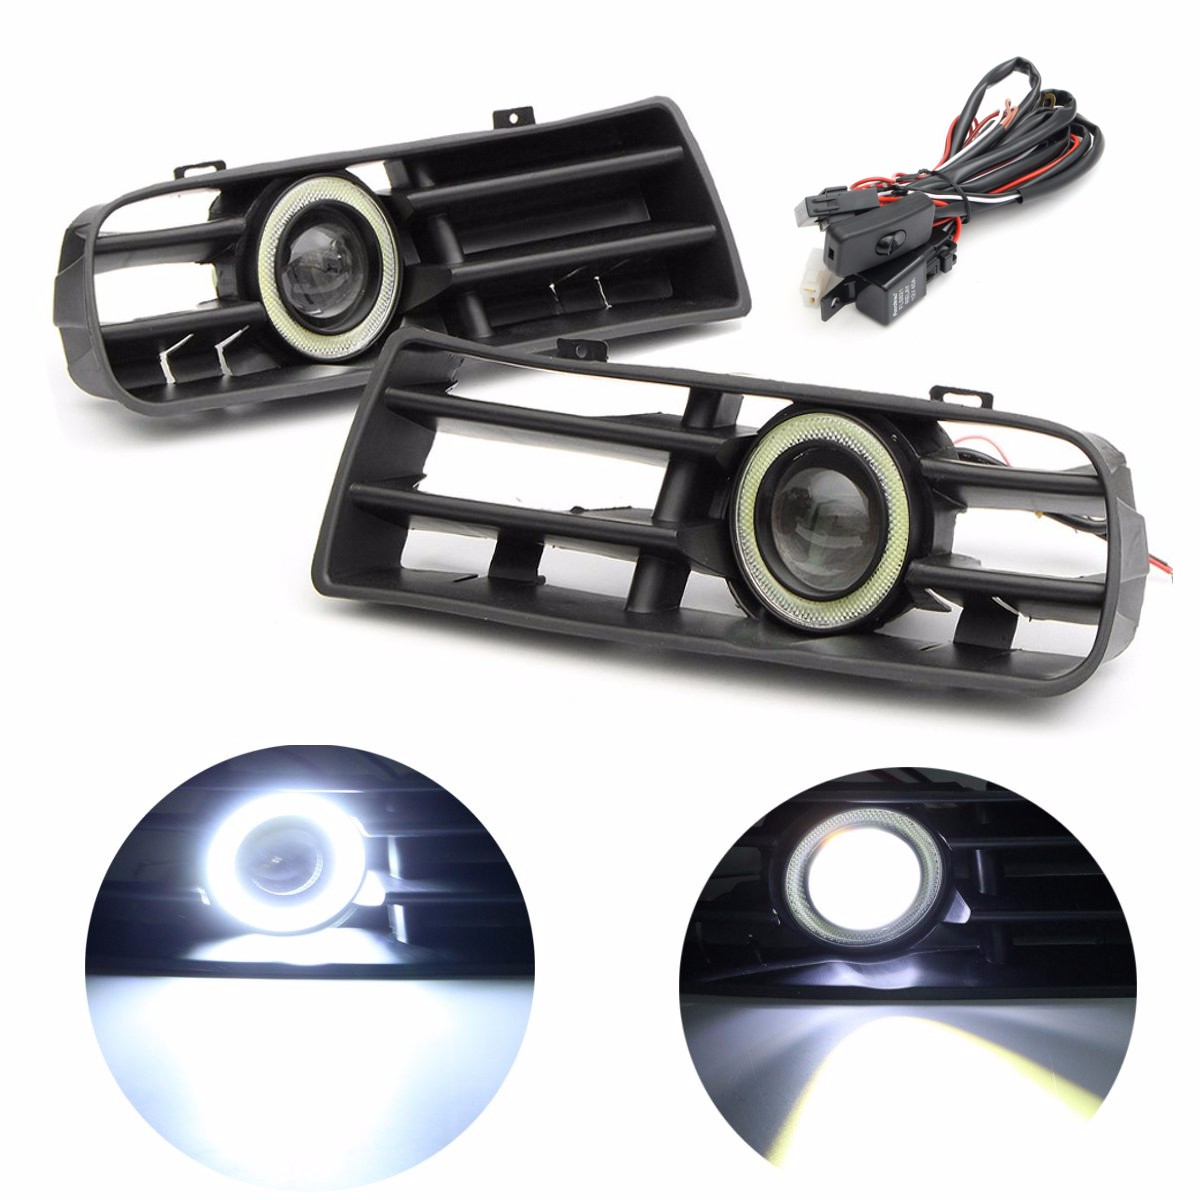 2x LED Fog Lights Angel Eyes Lamp Front Bumper Grille Grill Cover Foglight Kit For VW Golf MK4 98-04 for vw golf gti tdi r32 mk4 1998 2004 front bumper grill with led angel eyes fog lights switch wiring kit 9443